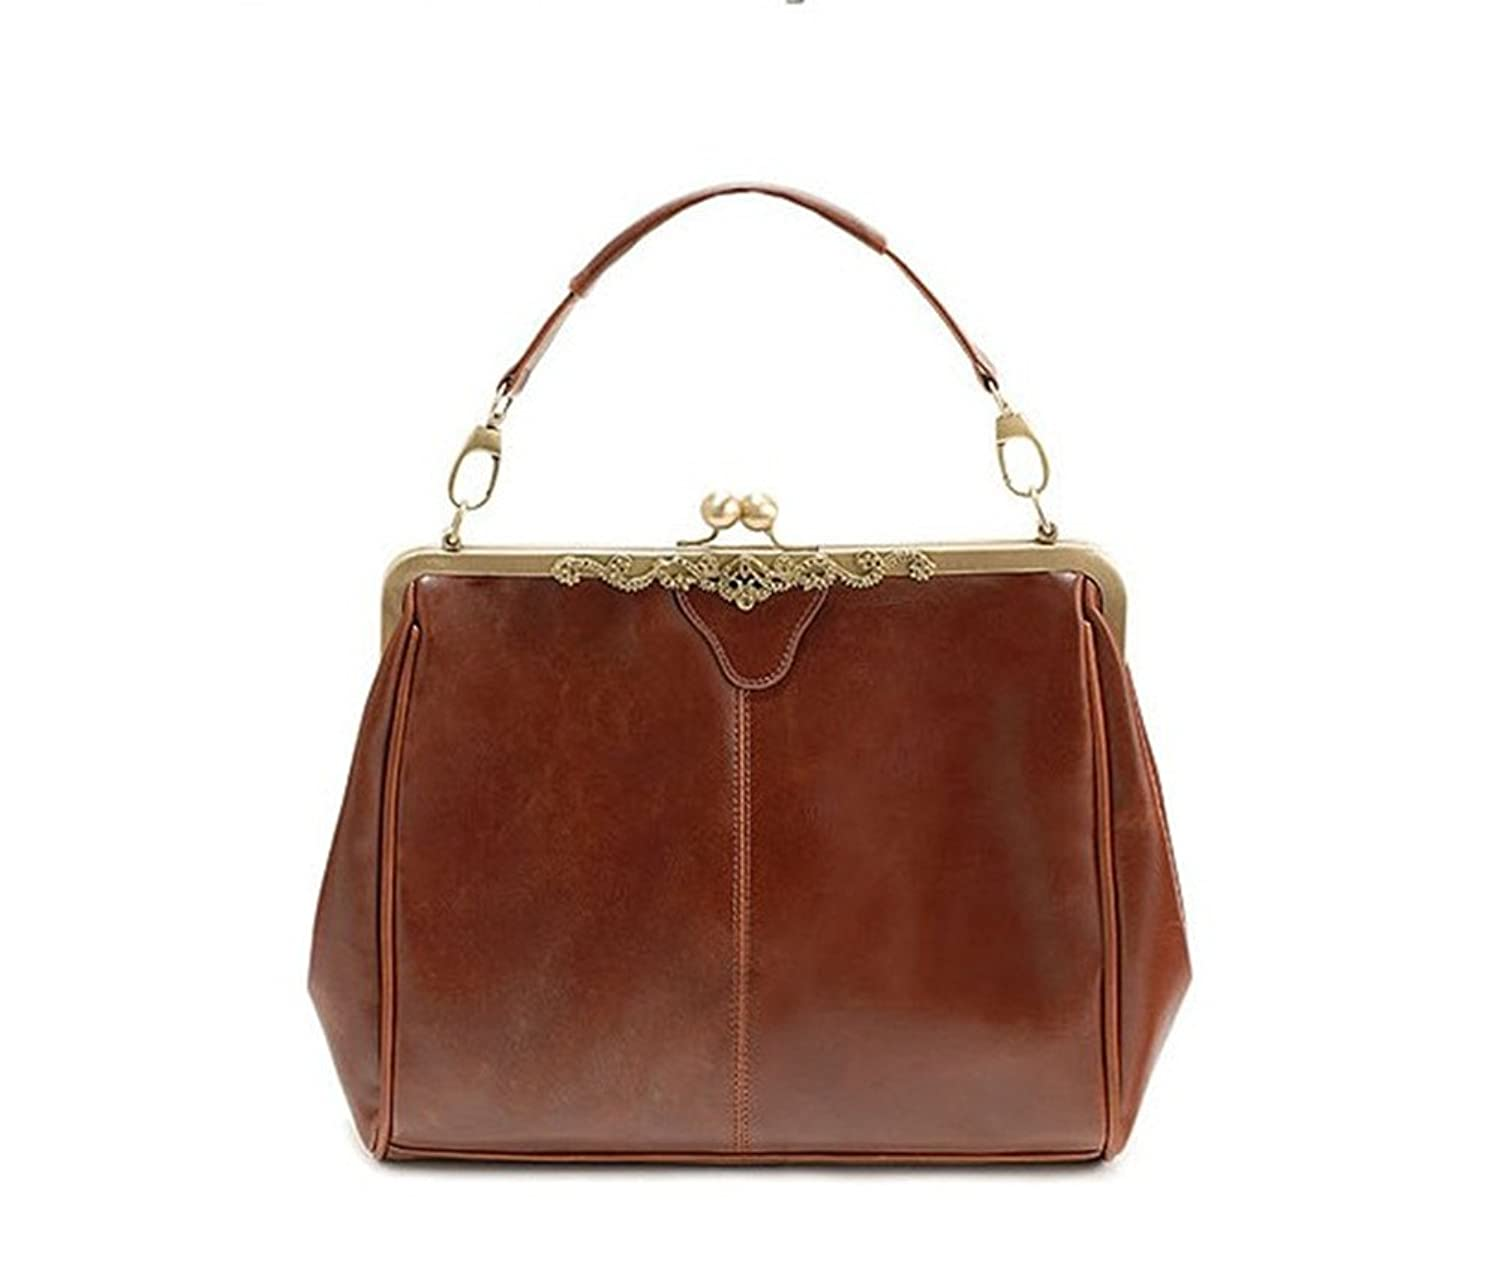 Vintage Style Kiss Lock PU Leather Fashionable Handle Shoulder Bag ... 7923dfc765